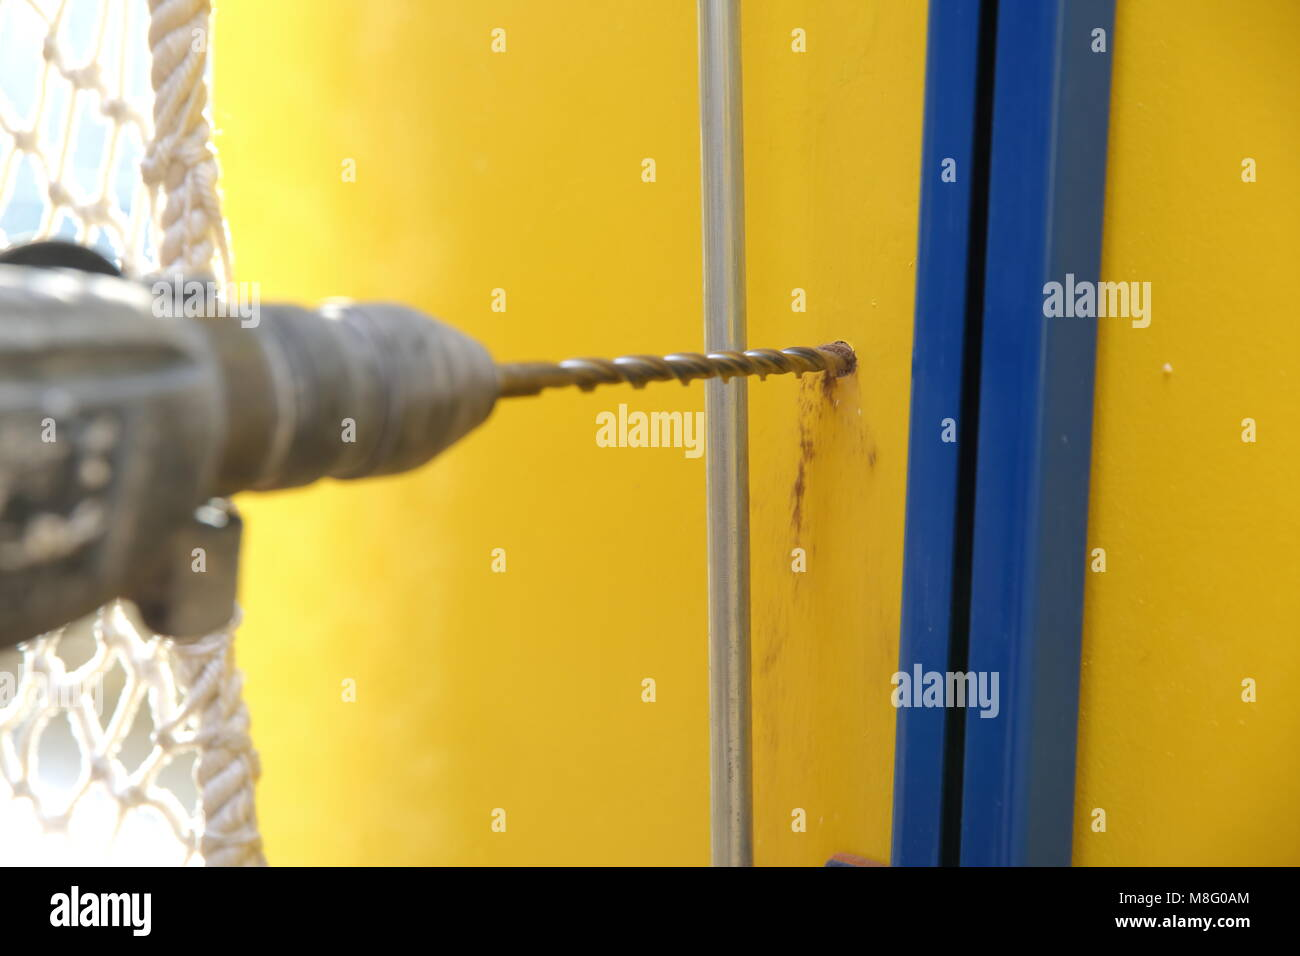 During drilling with a hammer drill, a lot of shocks and large noise are generated if the wall is solid concrete. Stock Photo